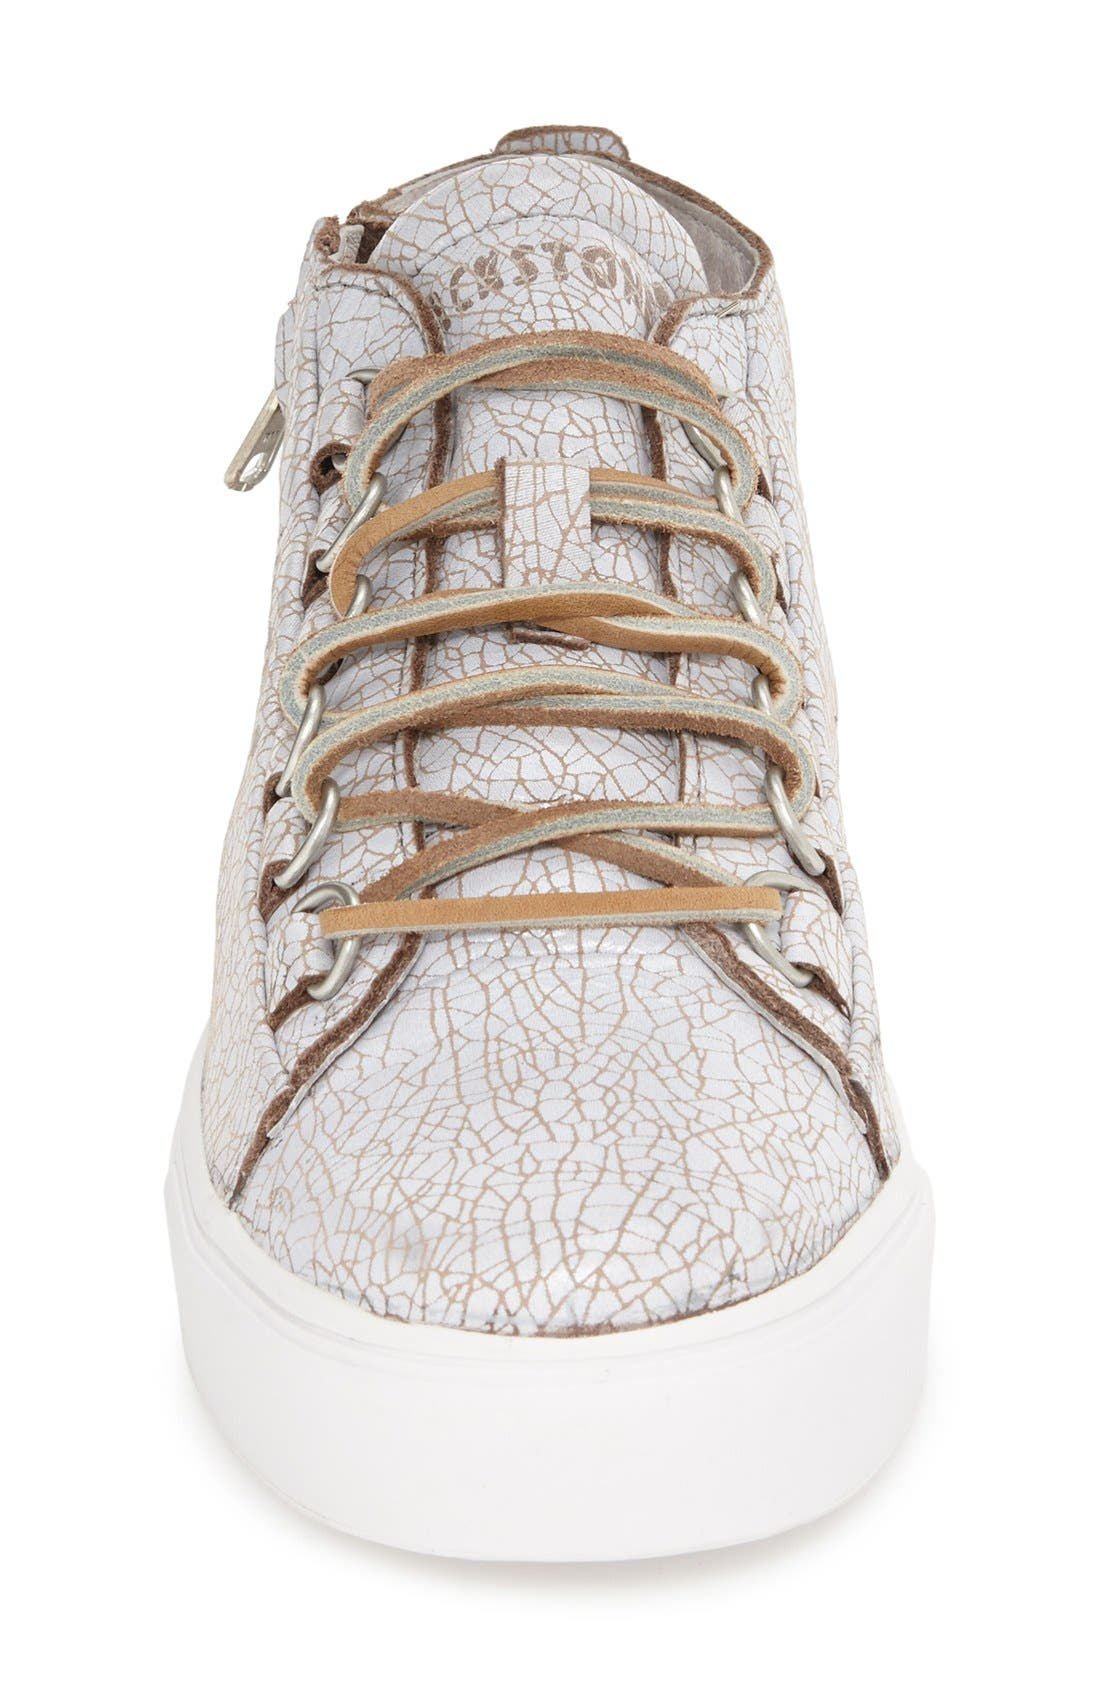 'LL60' Midi Sneaker,                             Alternate thumbnail 3, color,                             Hazel/ White Leather